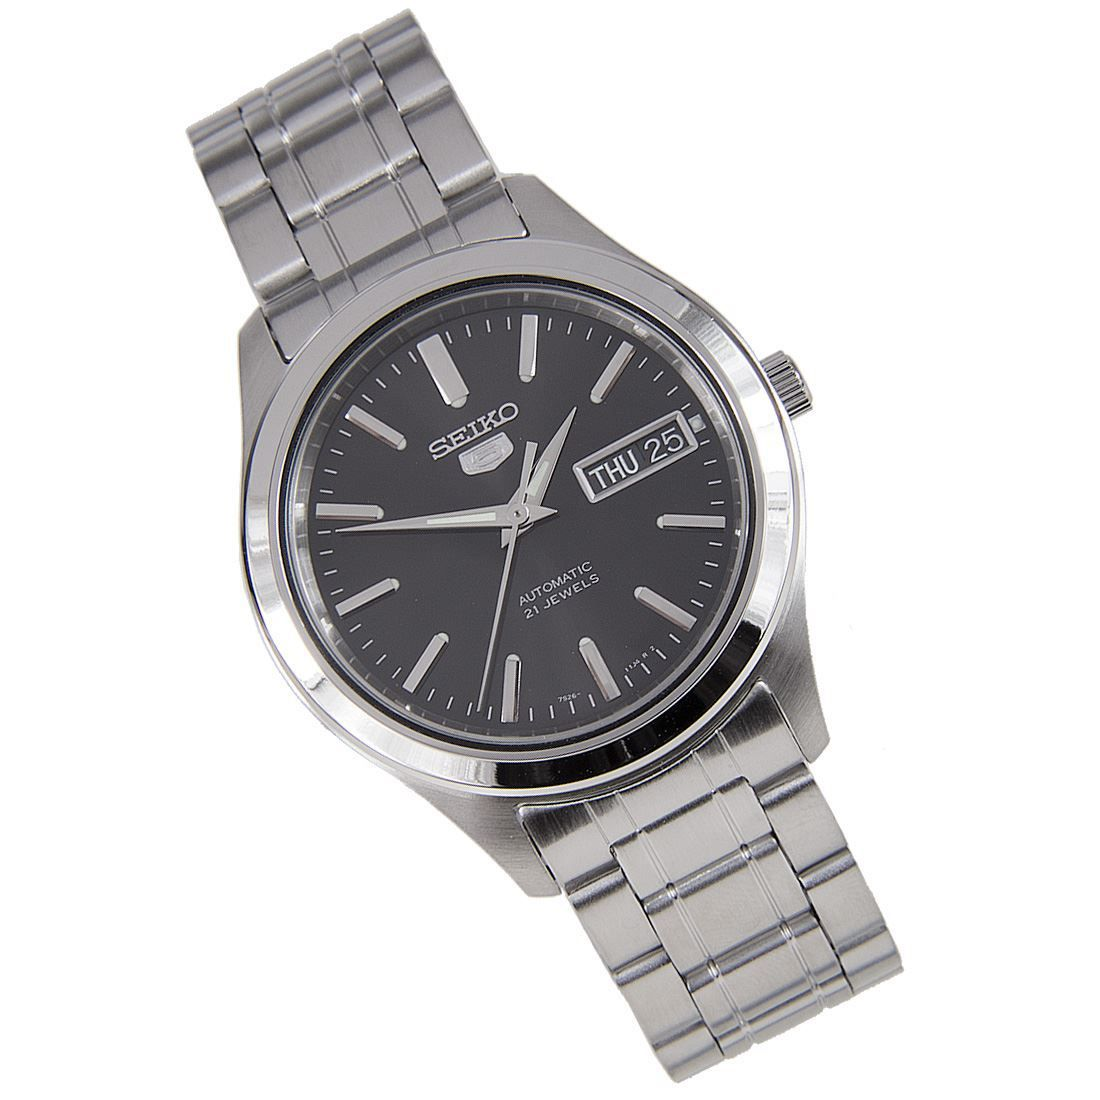 Seiko 5 Automatic Mens Casual Watch SNKM47K1 SNKM47